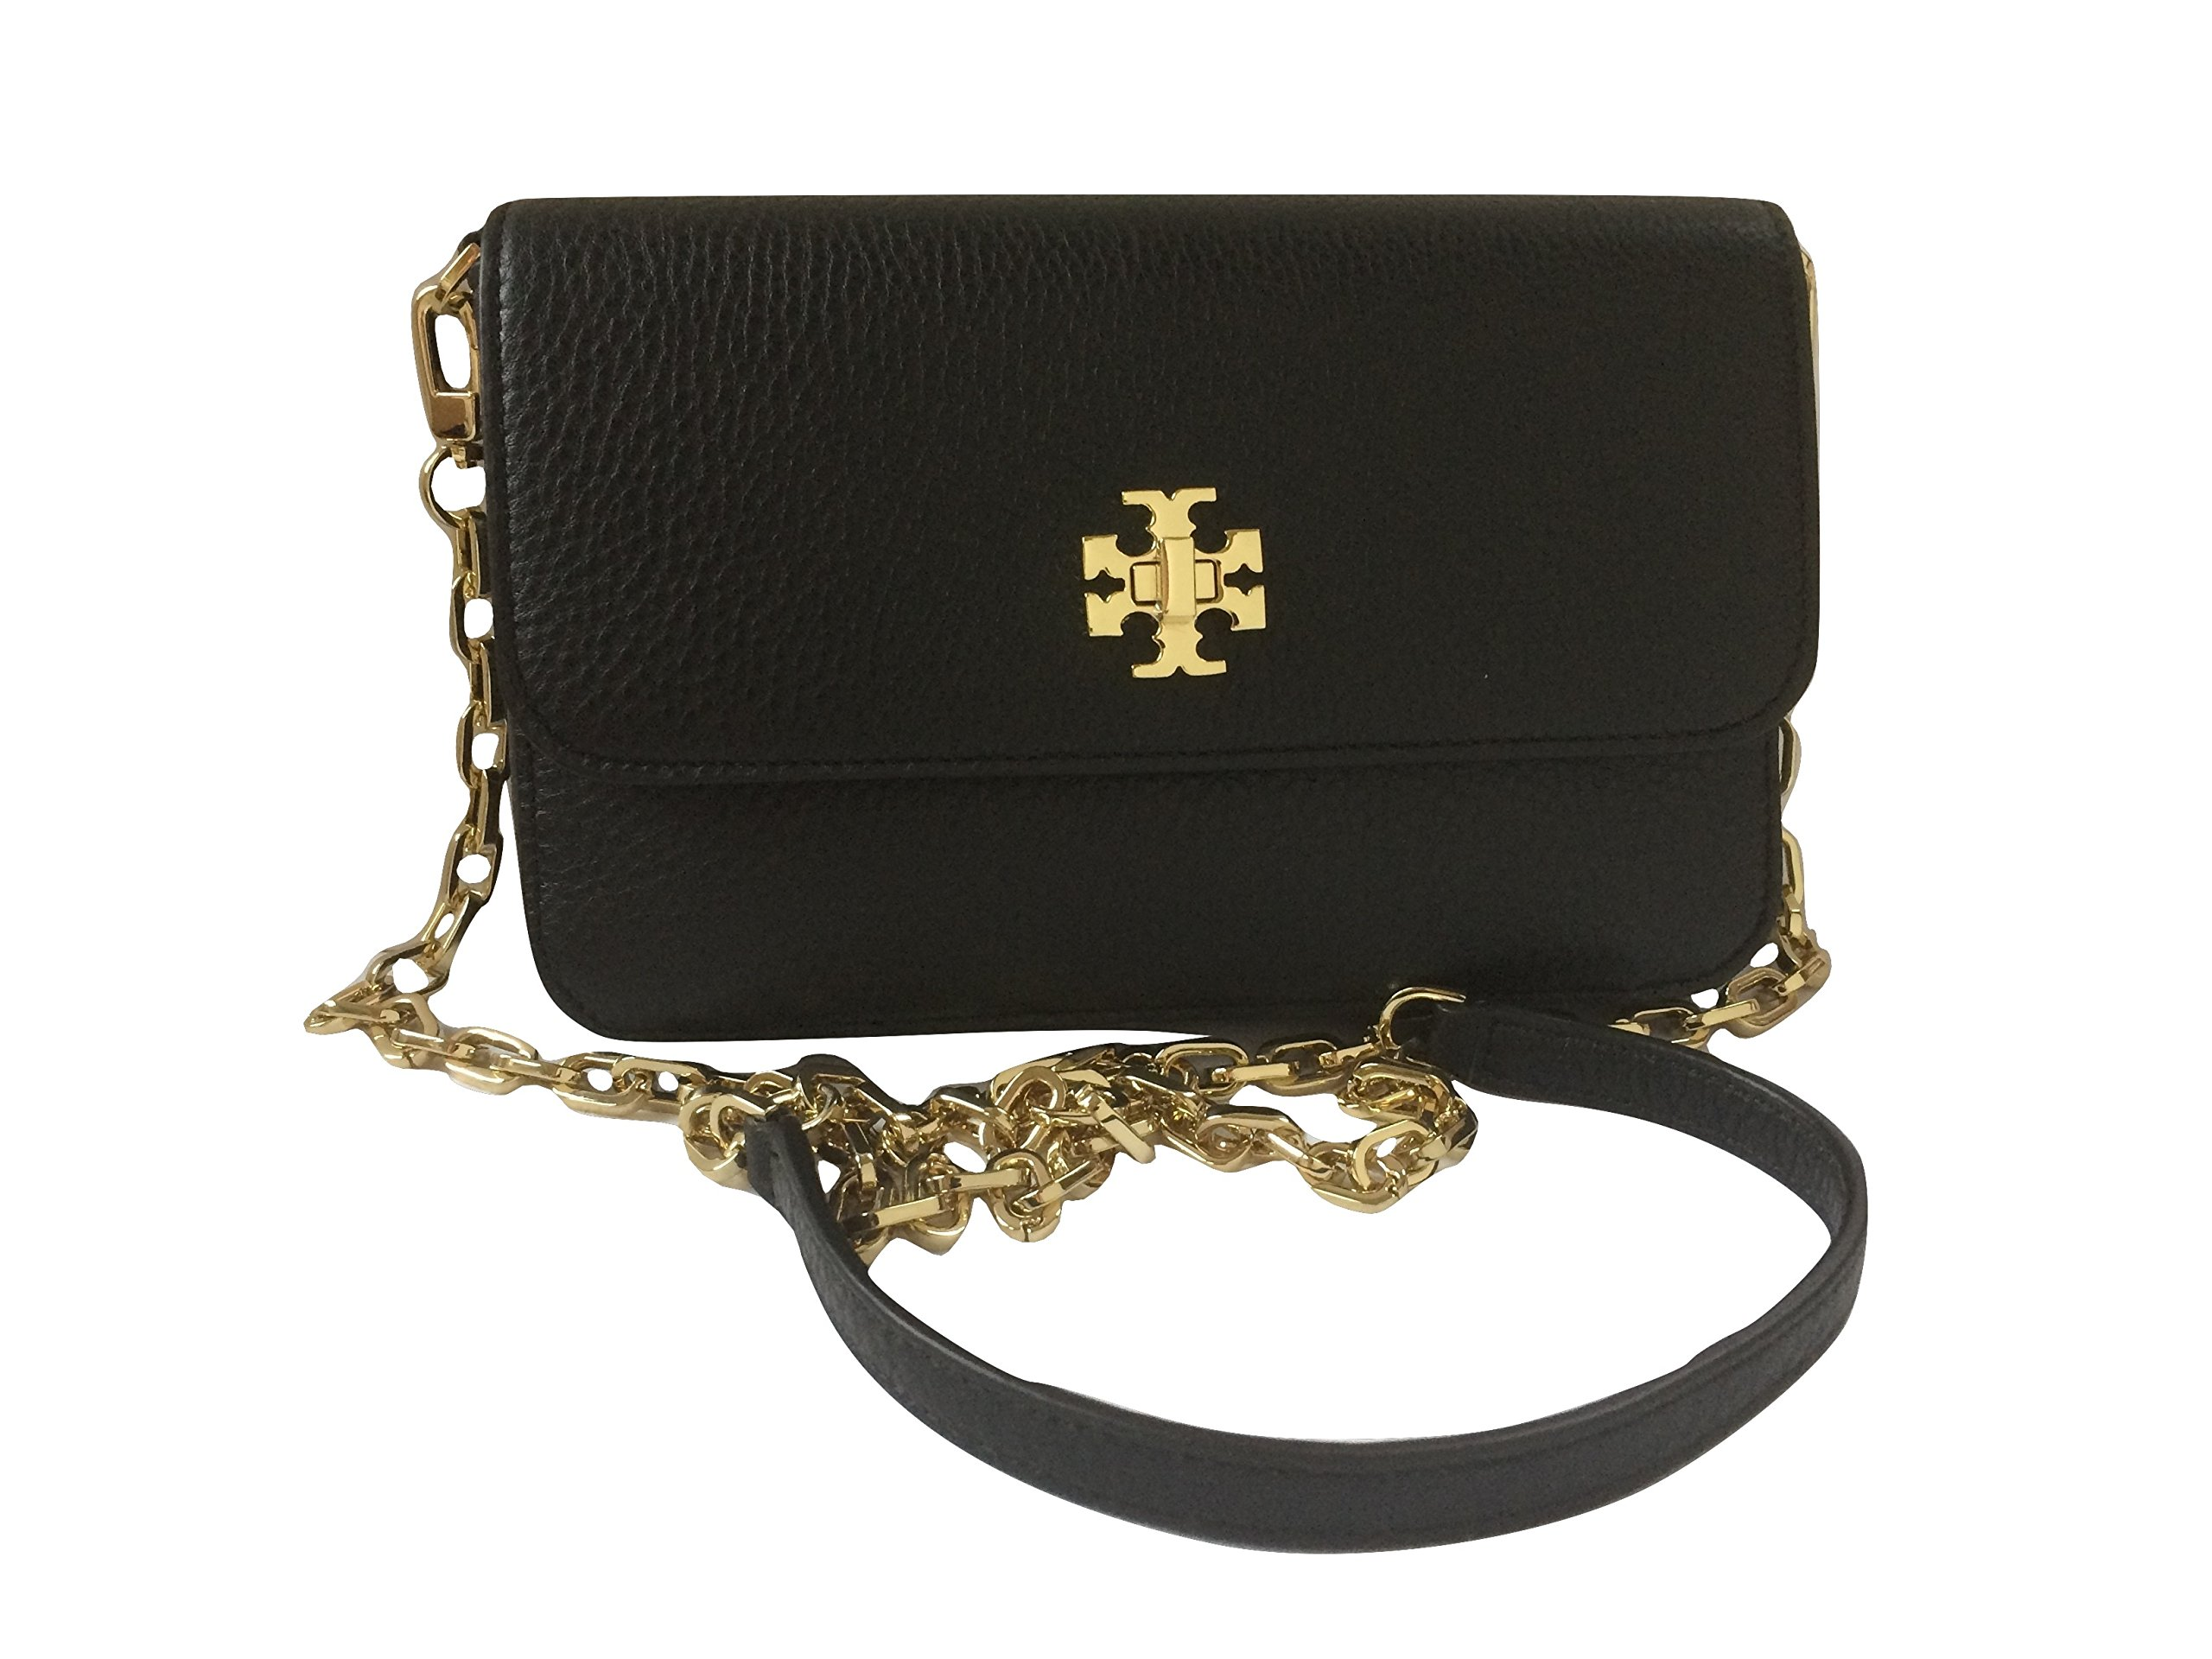 Tory Burch Mercer Classic Cross-body Bag Clutch Purse Style No. 31409 (Black) by Tory Burch